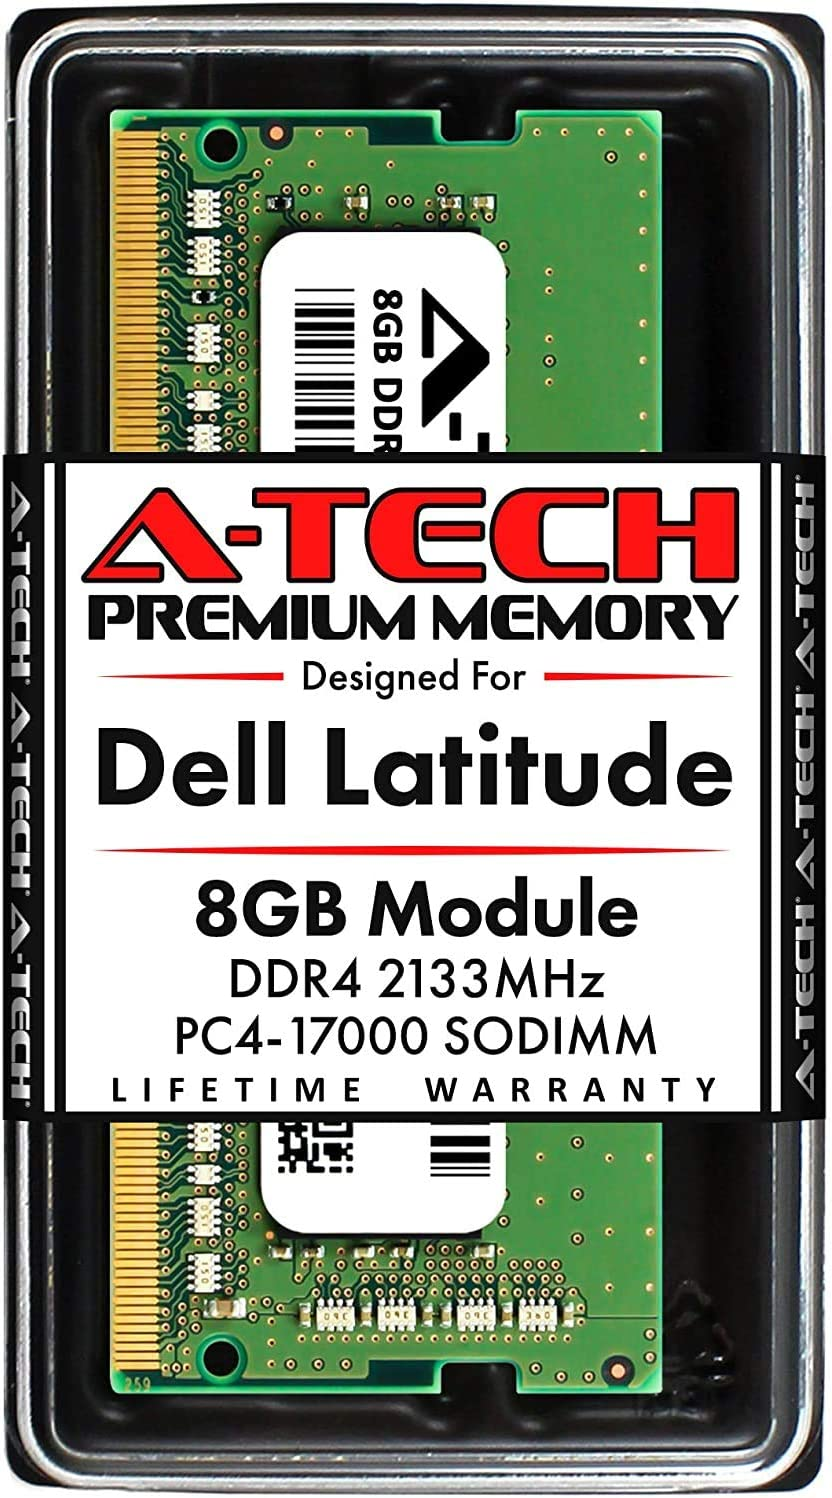 A-Tech 8GB RAM for Dell Latitude E7470, E7270, E5570, E5470, E5270 | DDR4 2133MHz SODIMM PC4-17000 Laptop Memory Upgrade Module